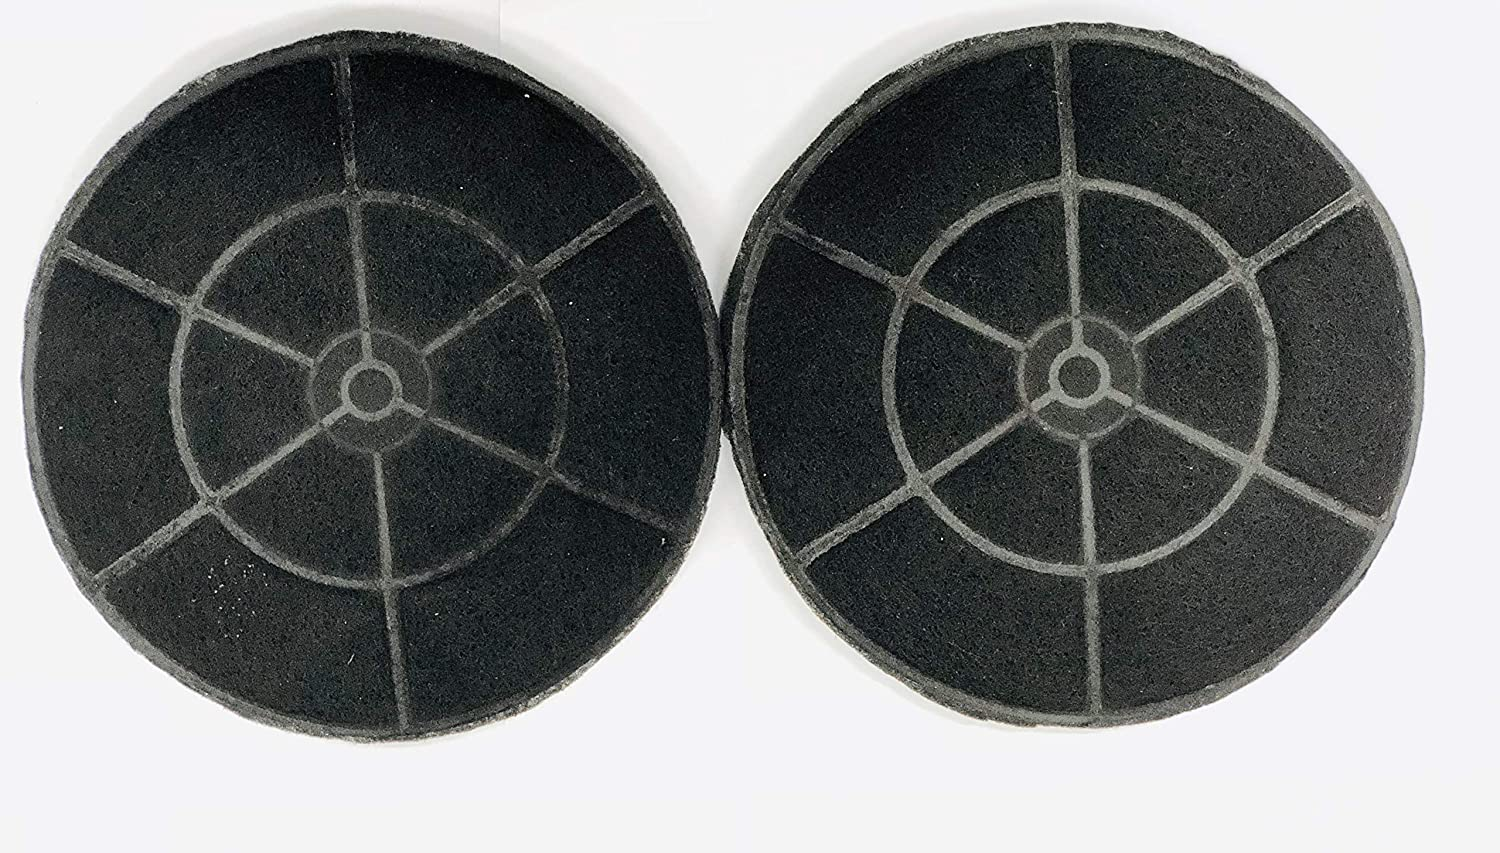 Winflo Carbon/Charcoal Filters (set of 2) for Ductless/Non-Ducted Application Easy Installation and Replacement for Winflo Range Hoods